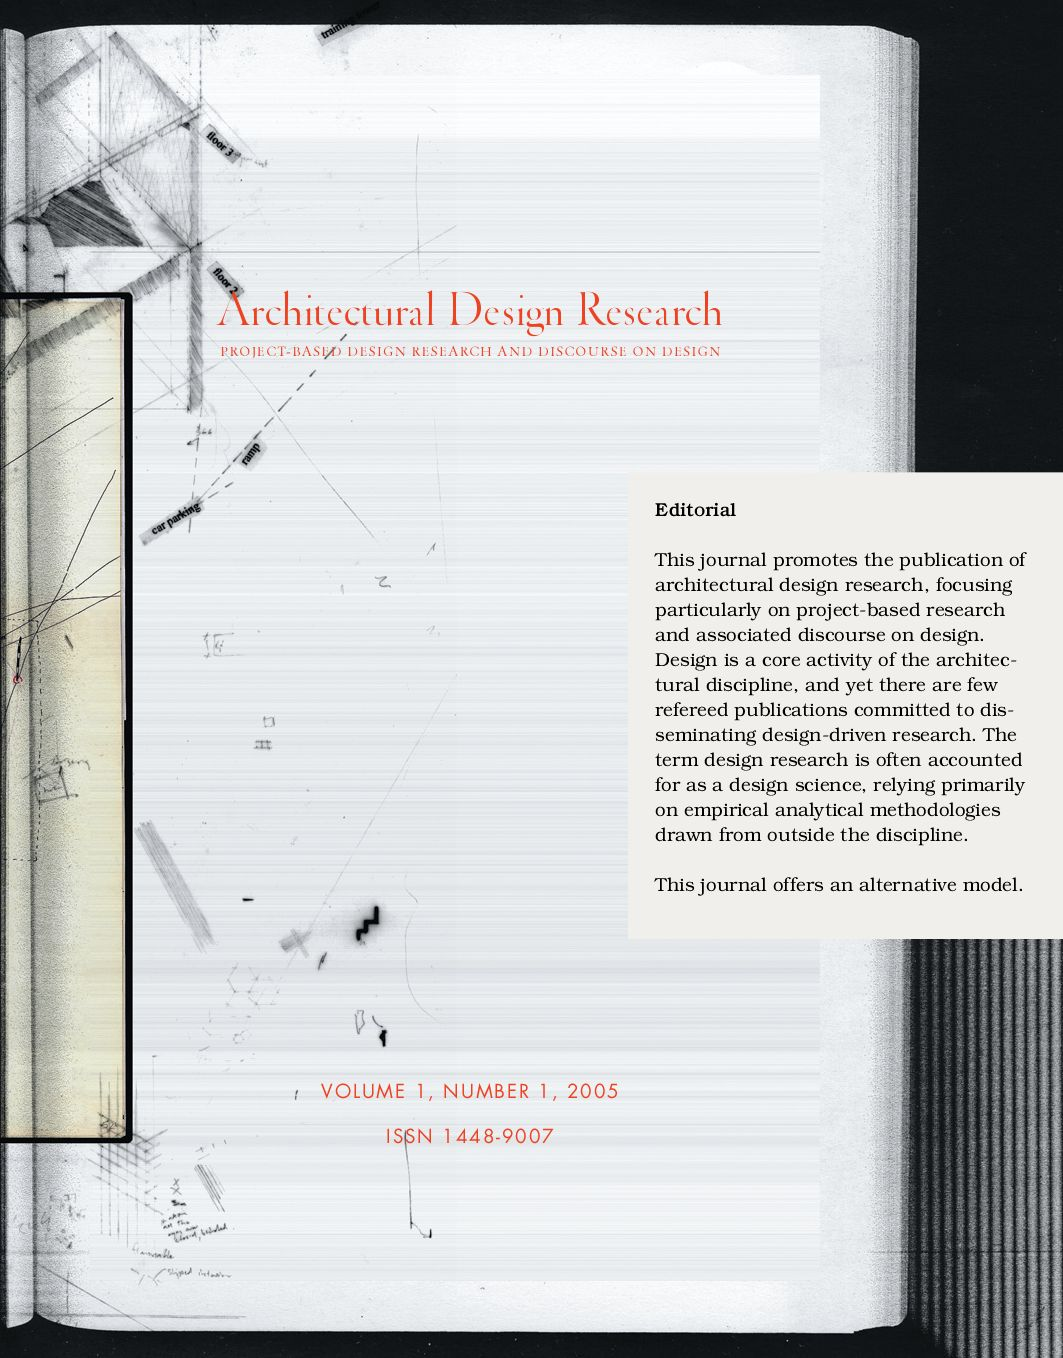 Architectural Design Research, Vol 1, No. 1: By Brent Allpress   Issuu